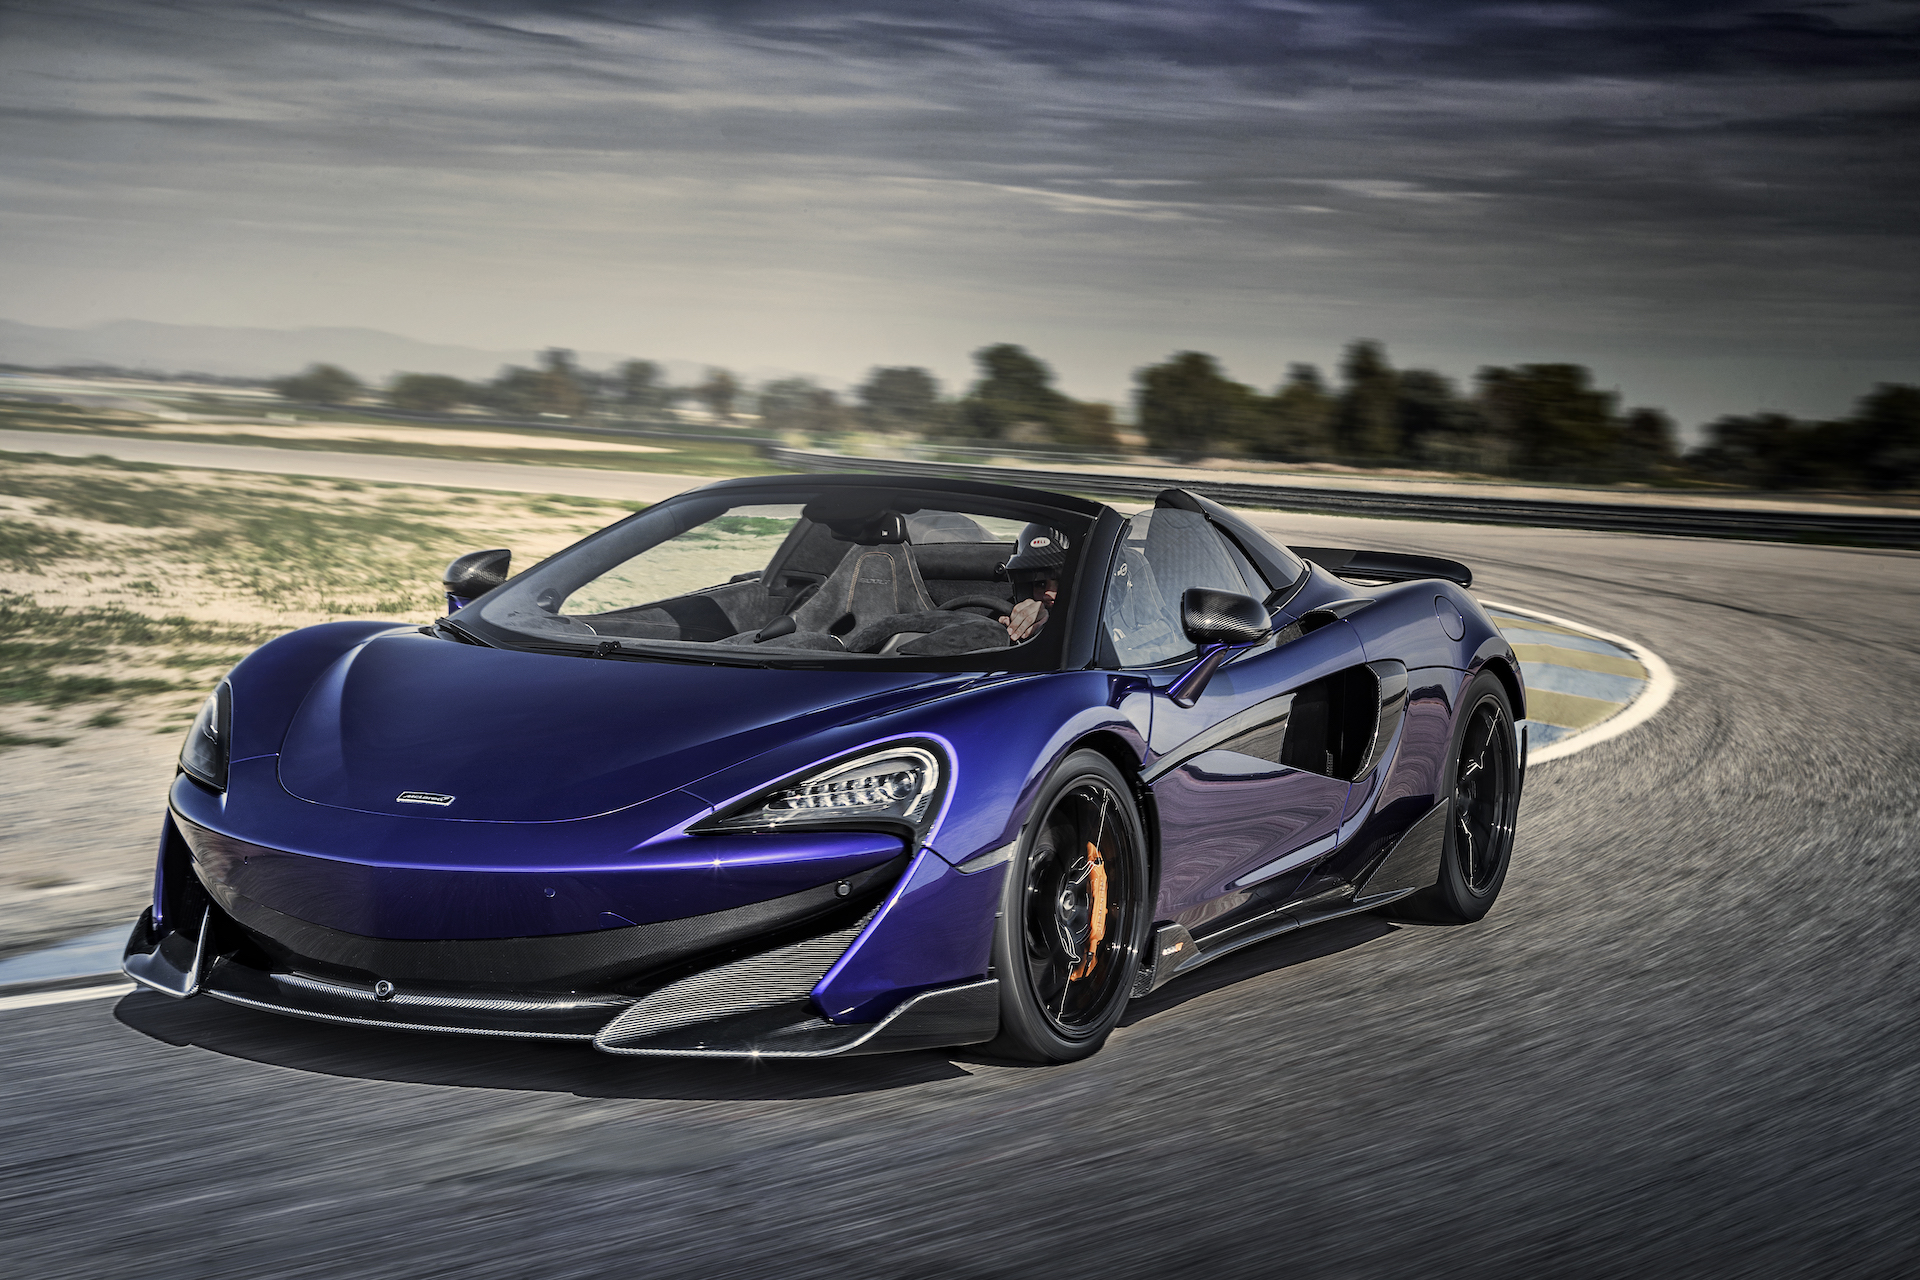 2020 McLaren 600LT Spider (Color: Lantana Purple) Front Three-Quarter Wallpapers #12 of 99